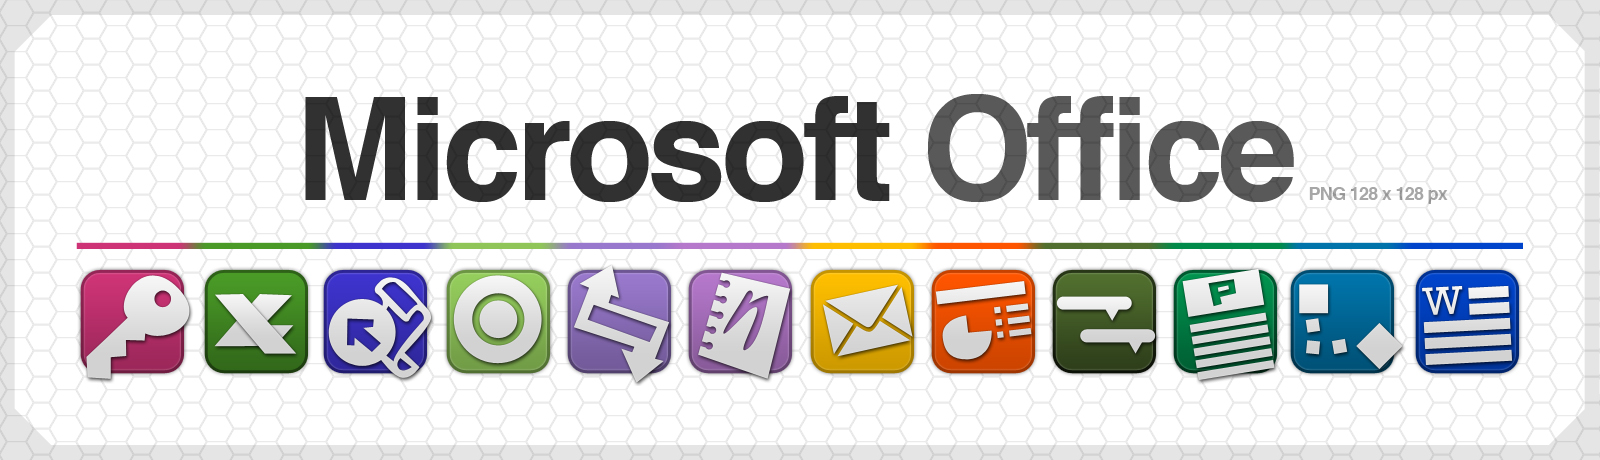 Microsoft Office Clip Art Gallery